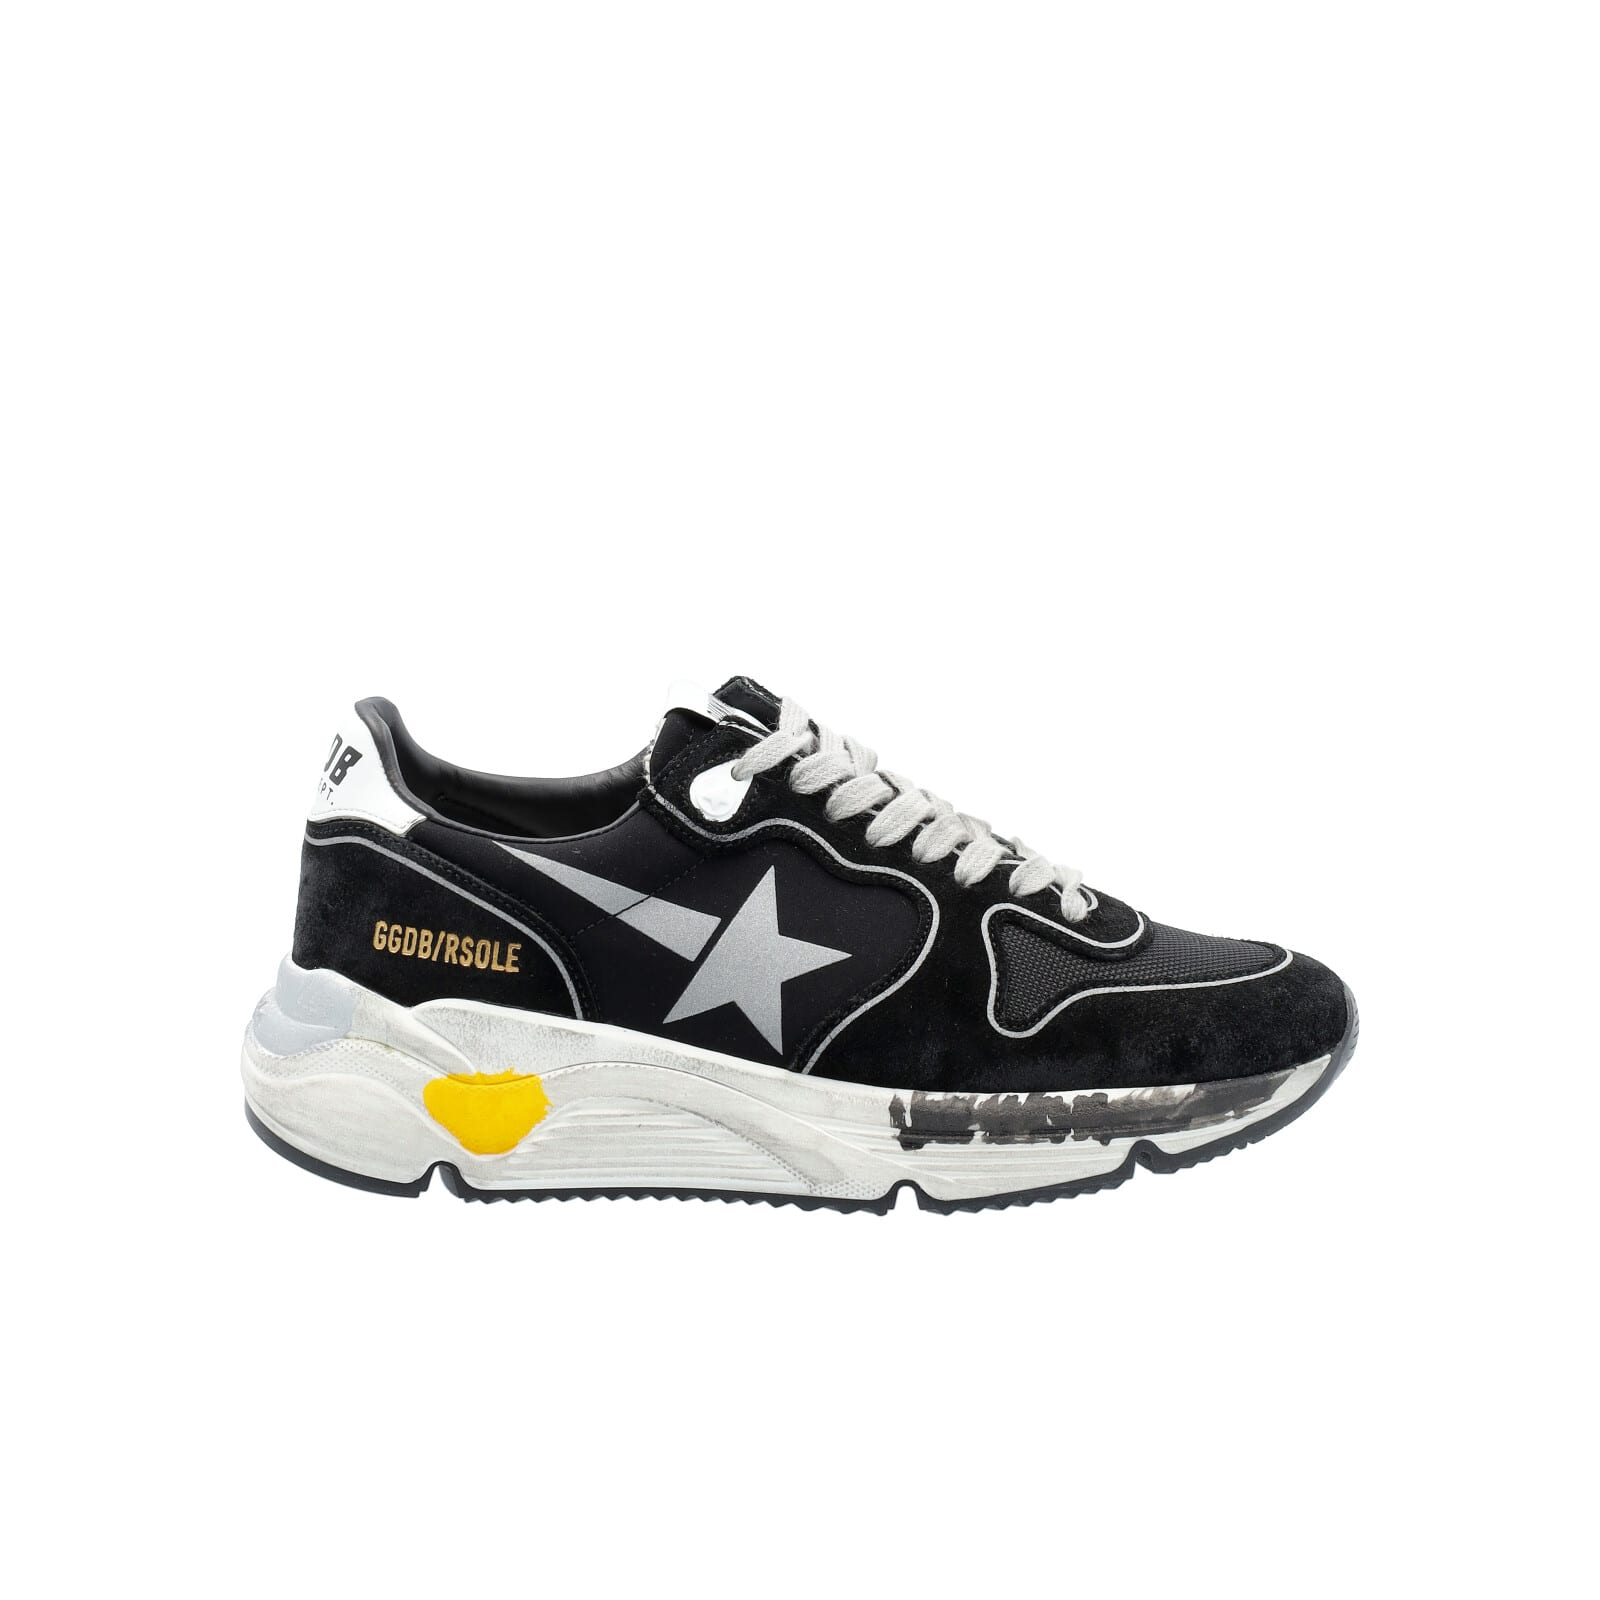 Golden Goose Black Running Sole Sneakers With Silver Star